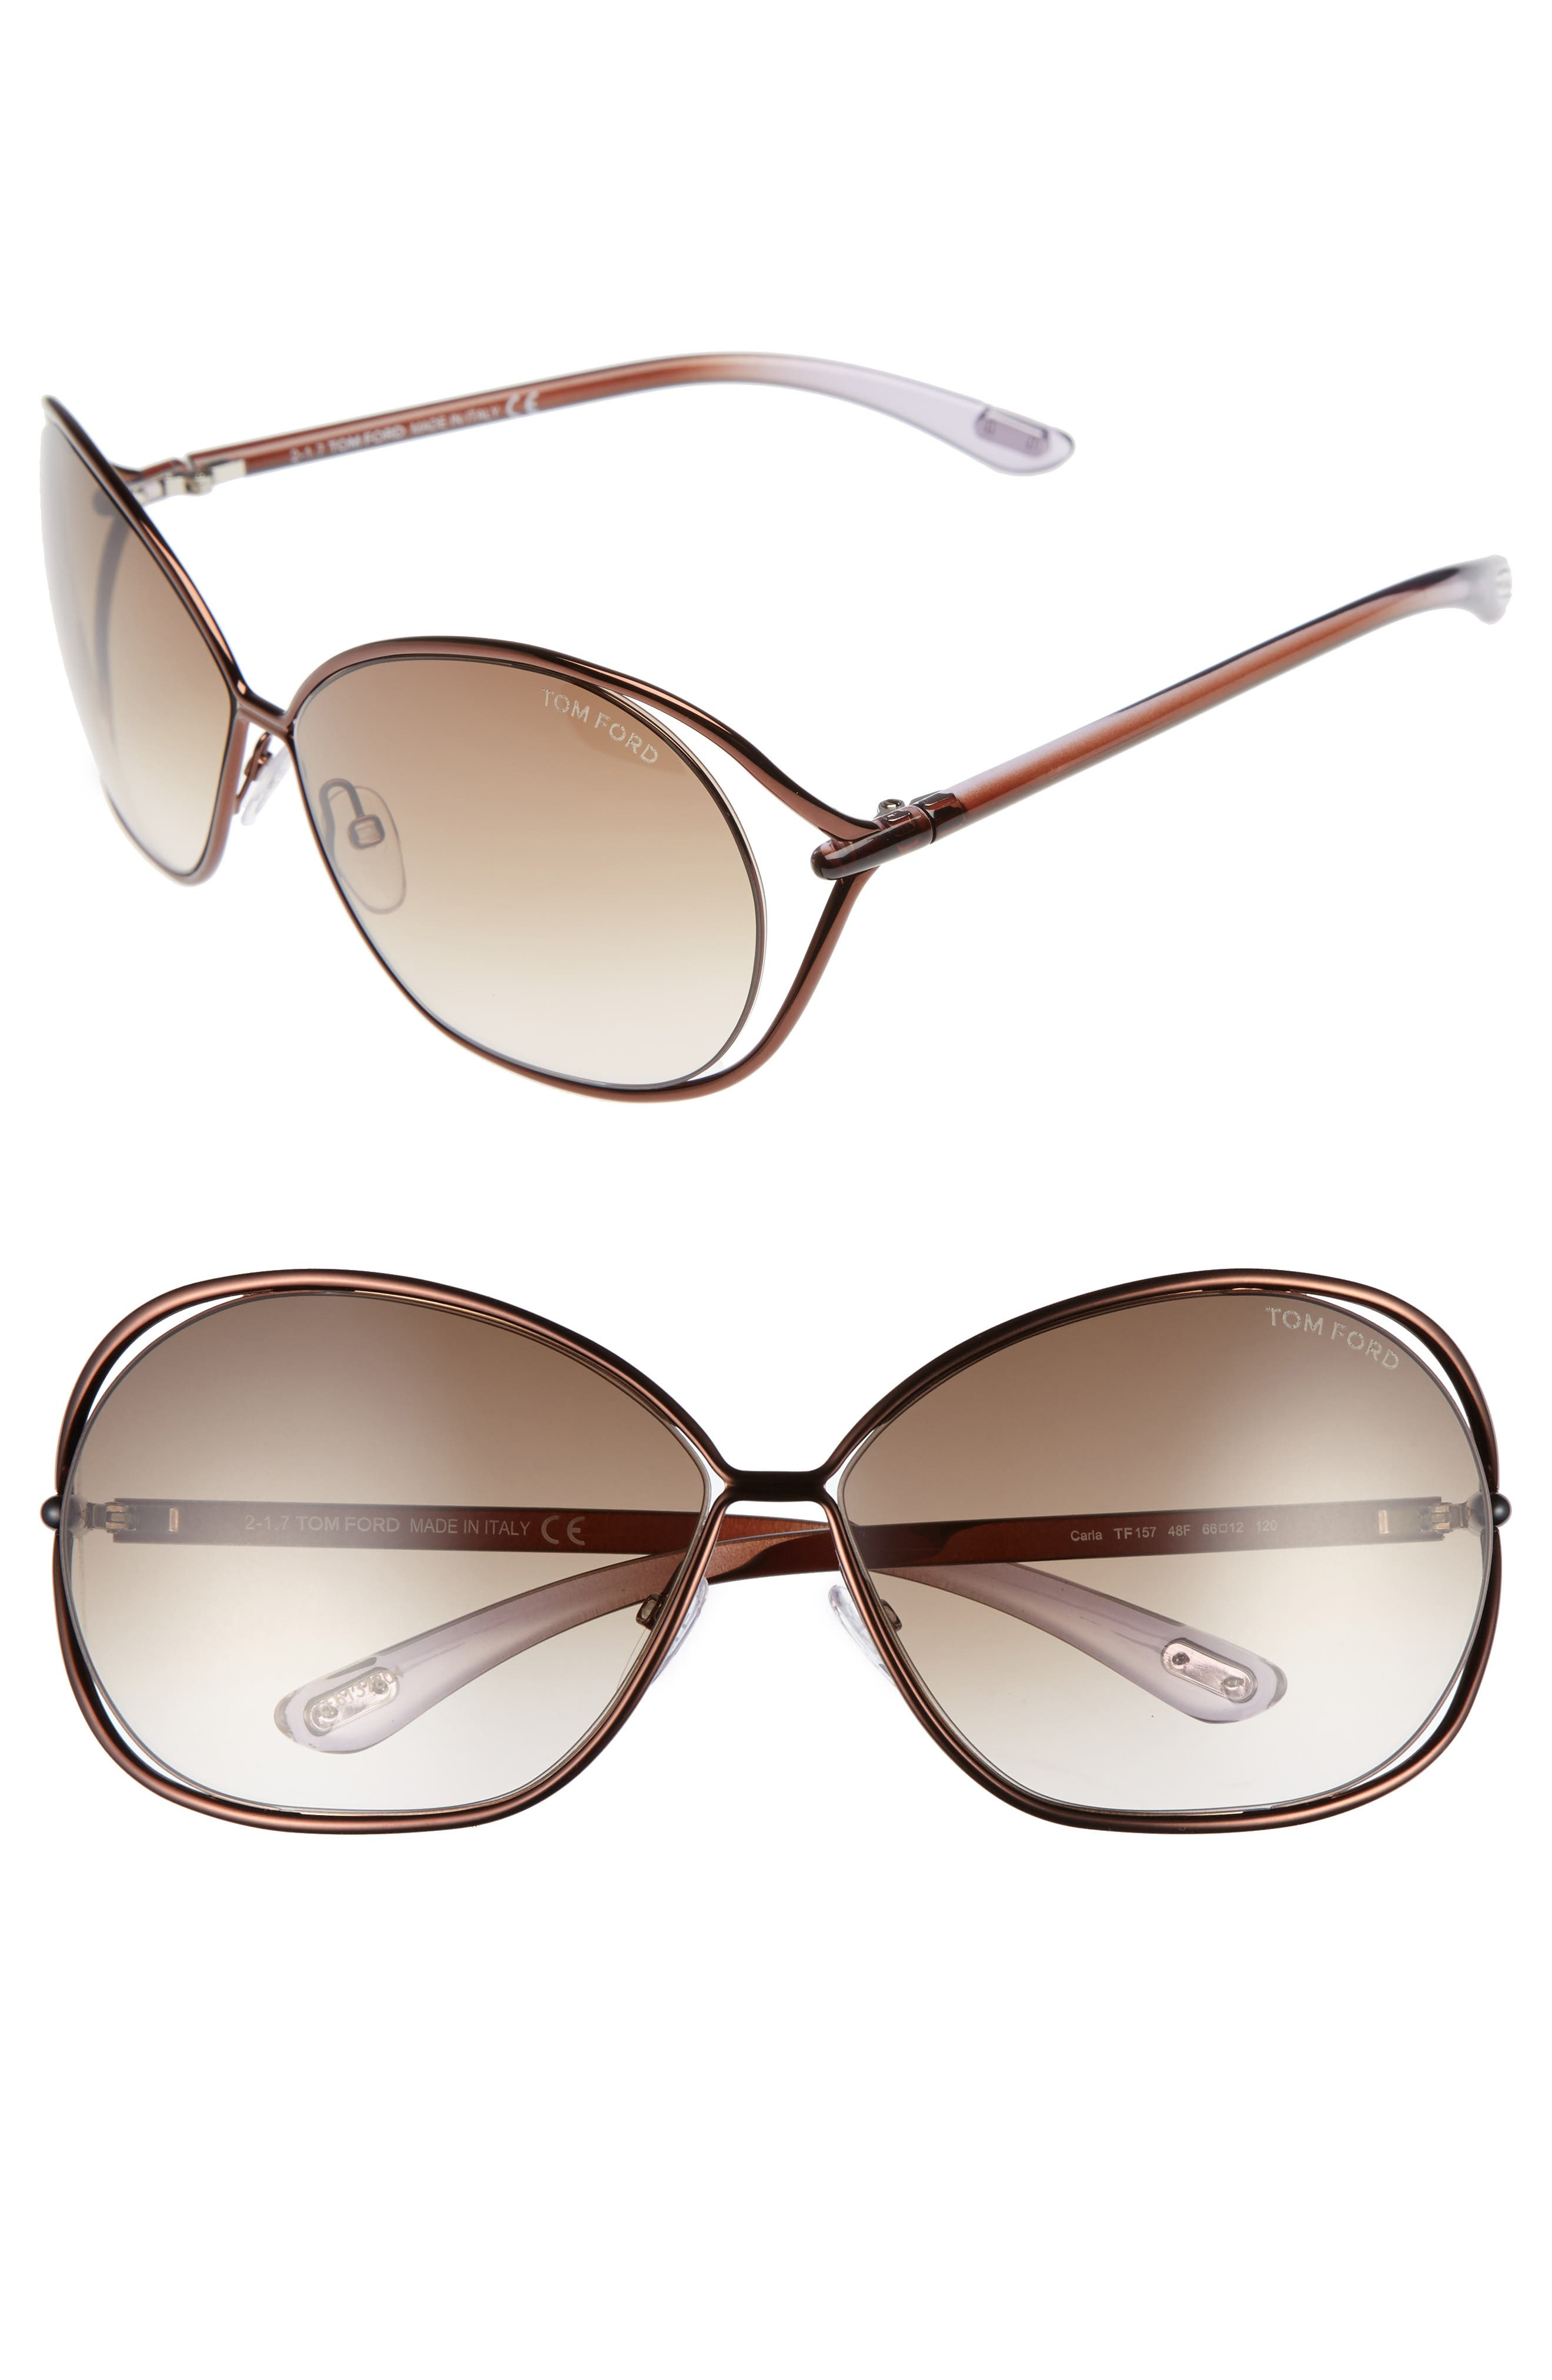 Carla 66mm Oversized Round Metal Sunglasses,                             Alternate thumbnail 2, color,                             BROWN/ BROWN